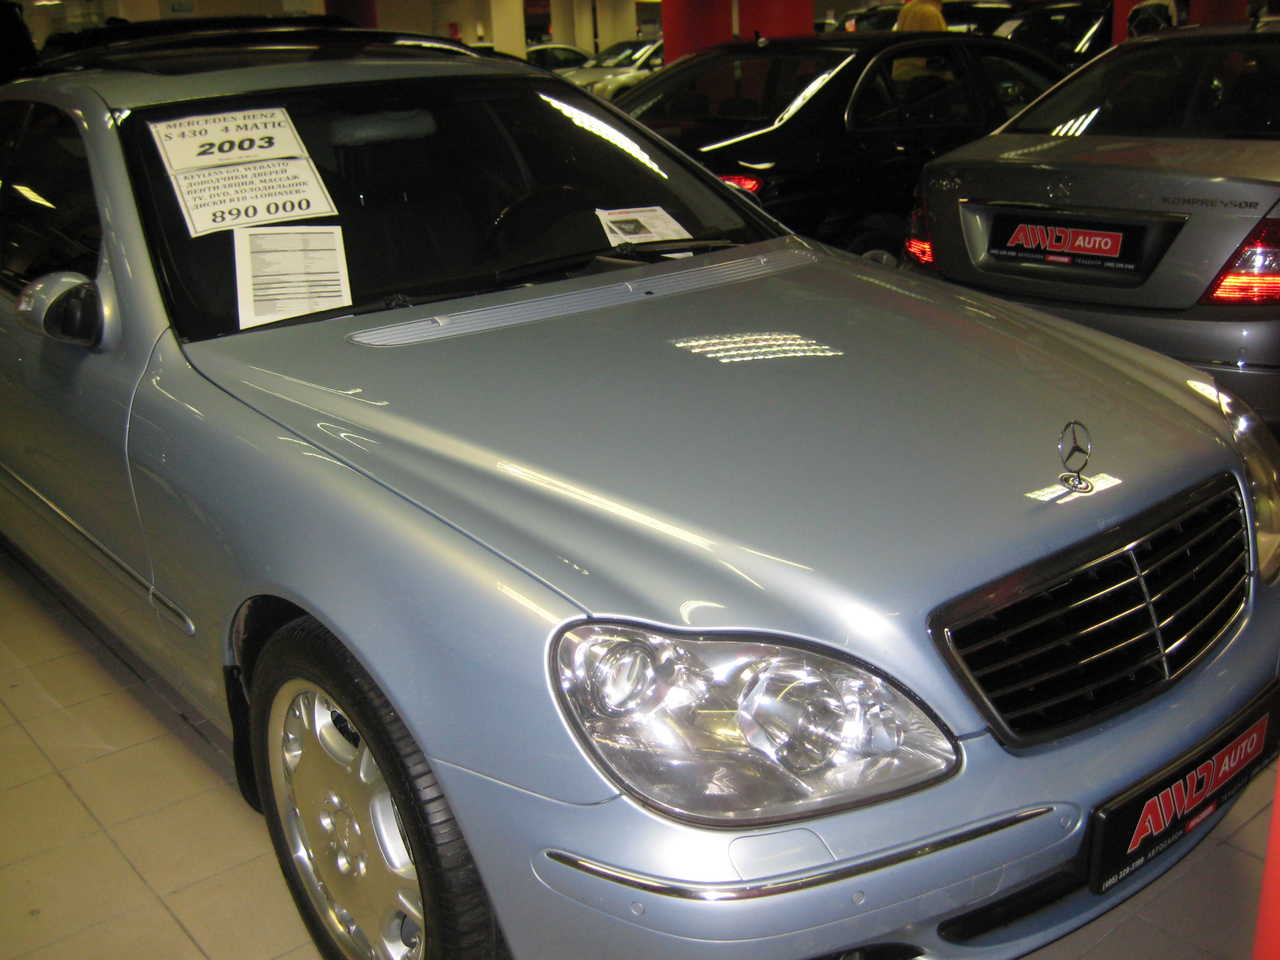 2003 mercedes benz s class pictures for sale for 2003 mercedes benz s500 for sale